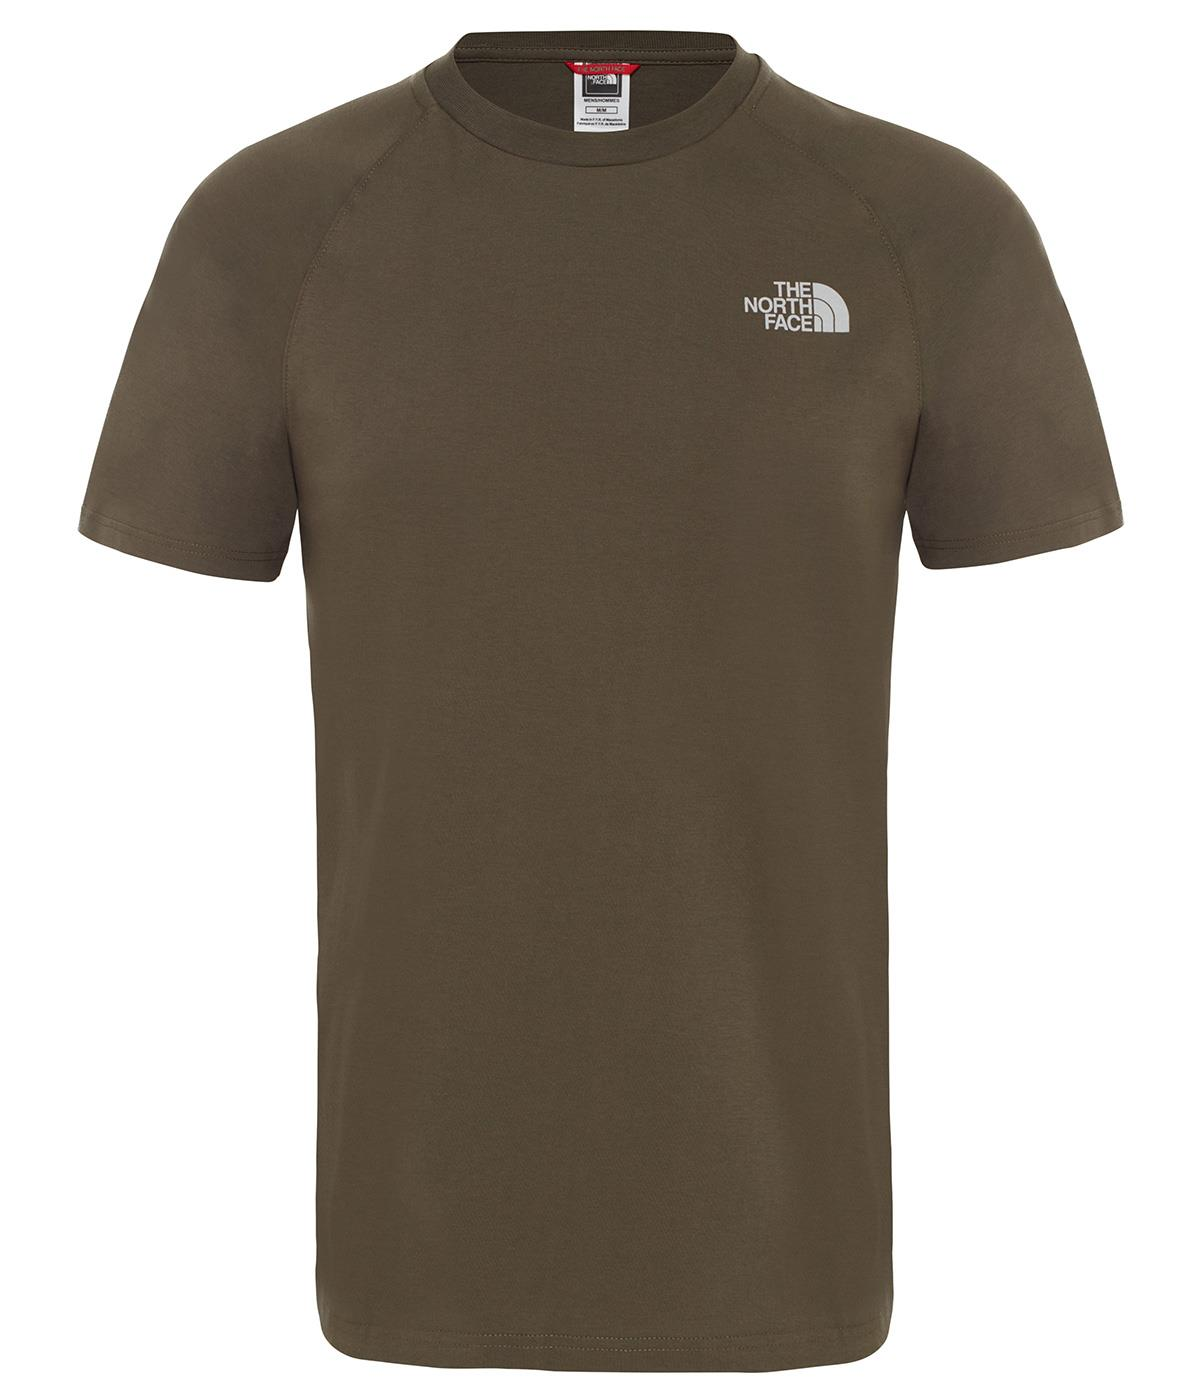 The Northface Erkek S/S North Faces Tee - Eu T0Ceq821L Tişört